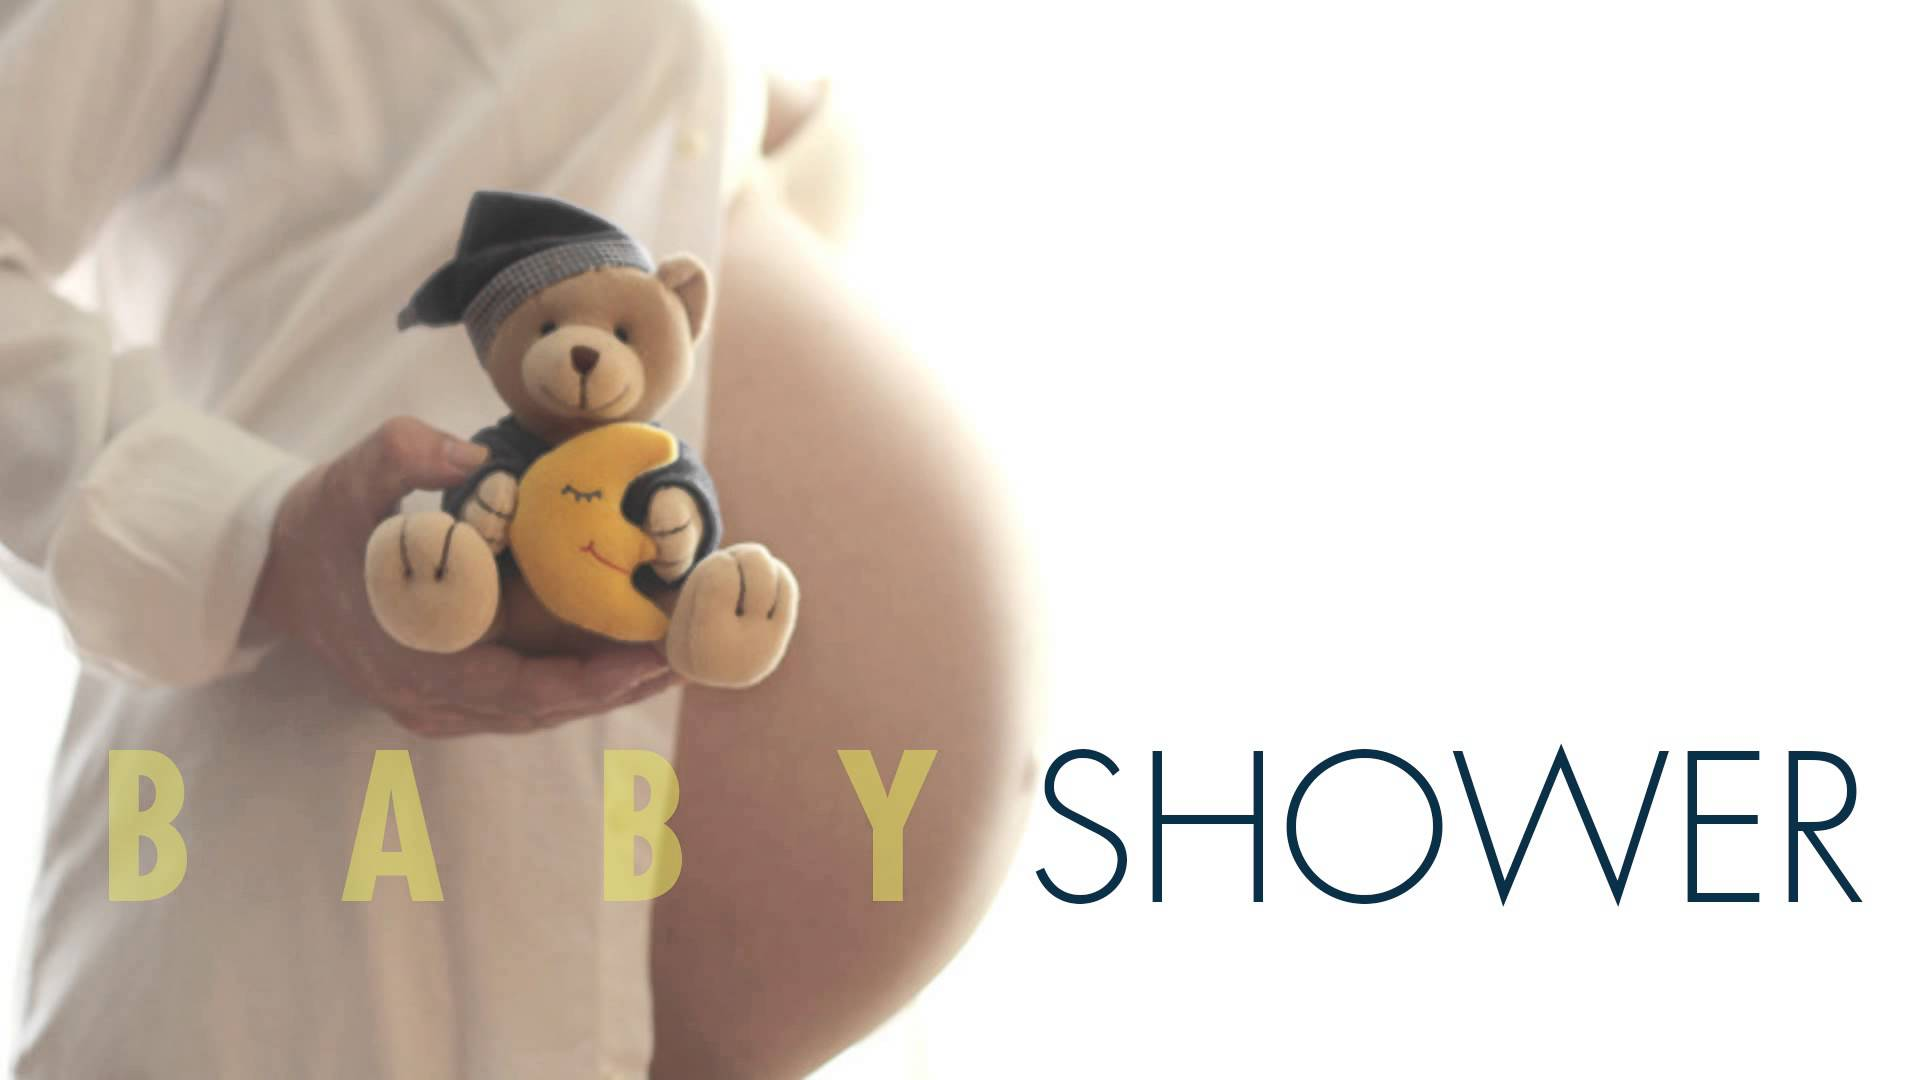 baby shower wallpaper hd baby shower wallpaper hd1 600x338